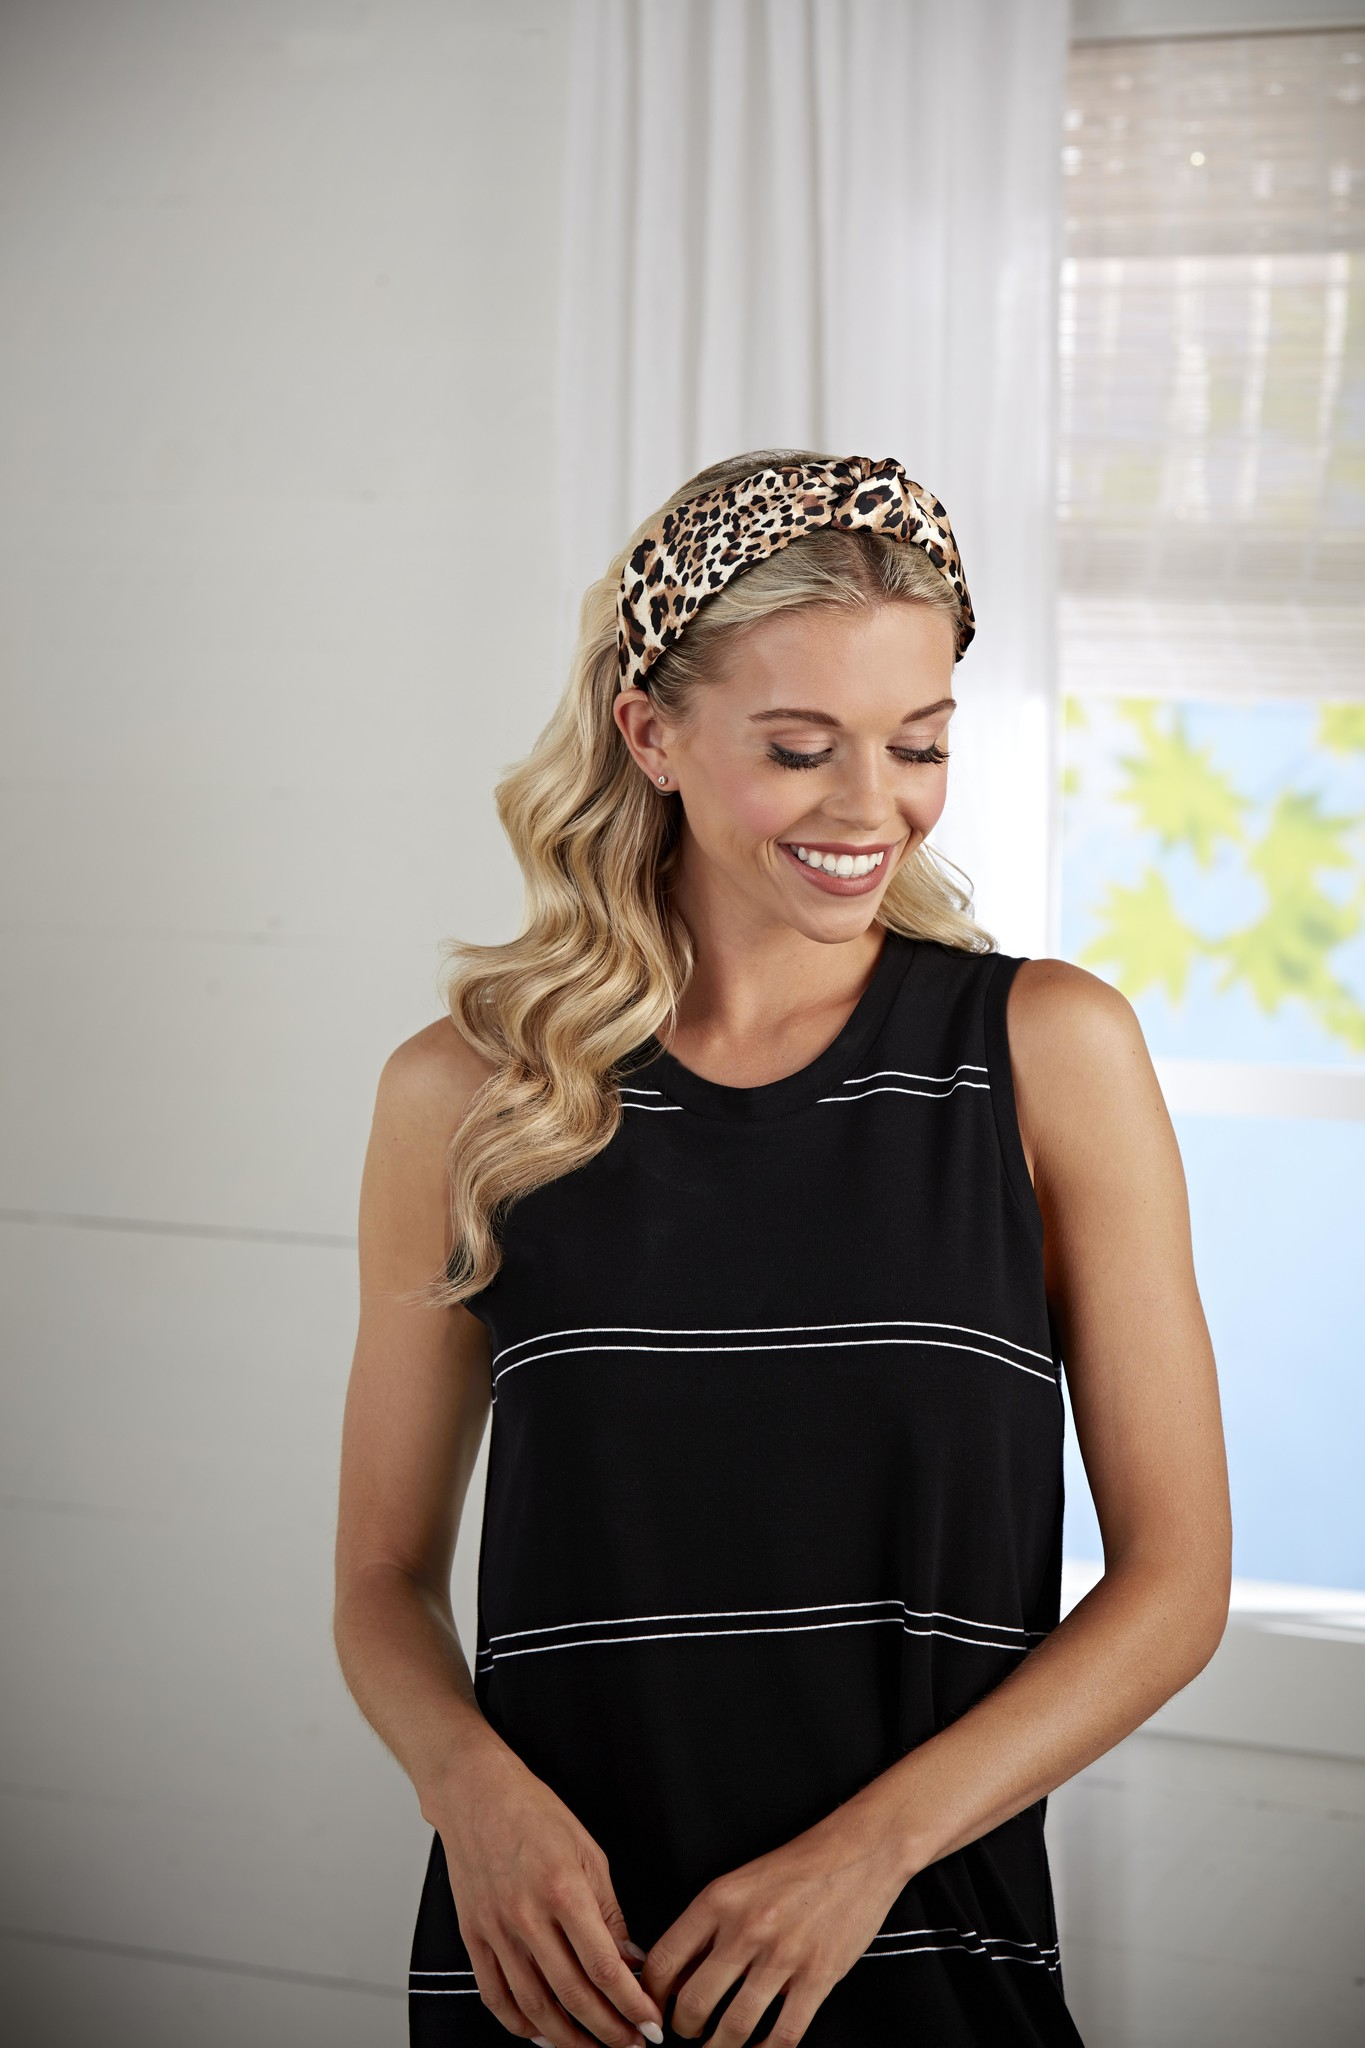 Mudpie Patterned Knotted Headbands